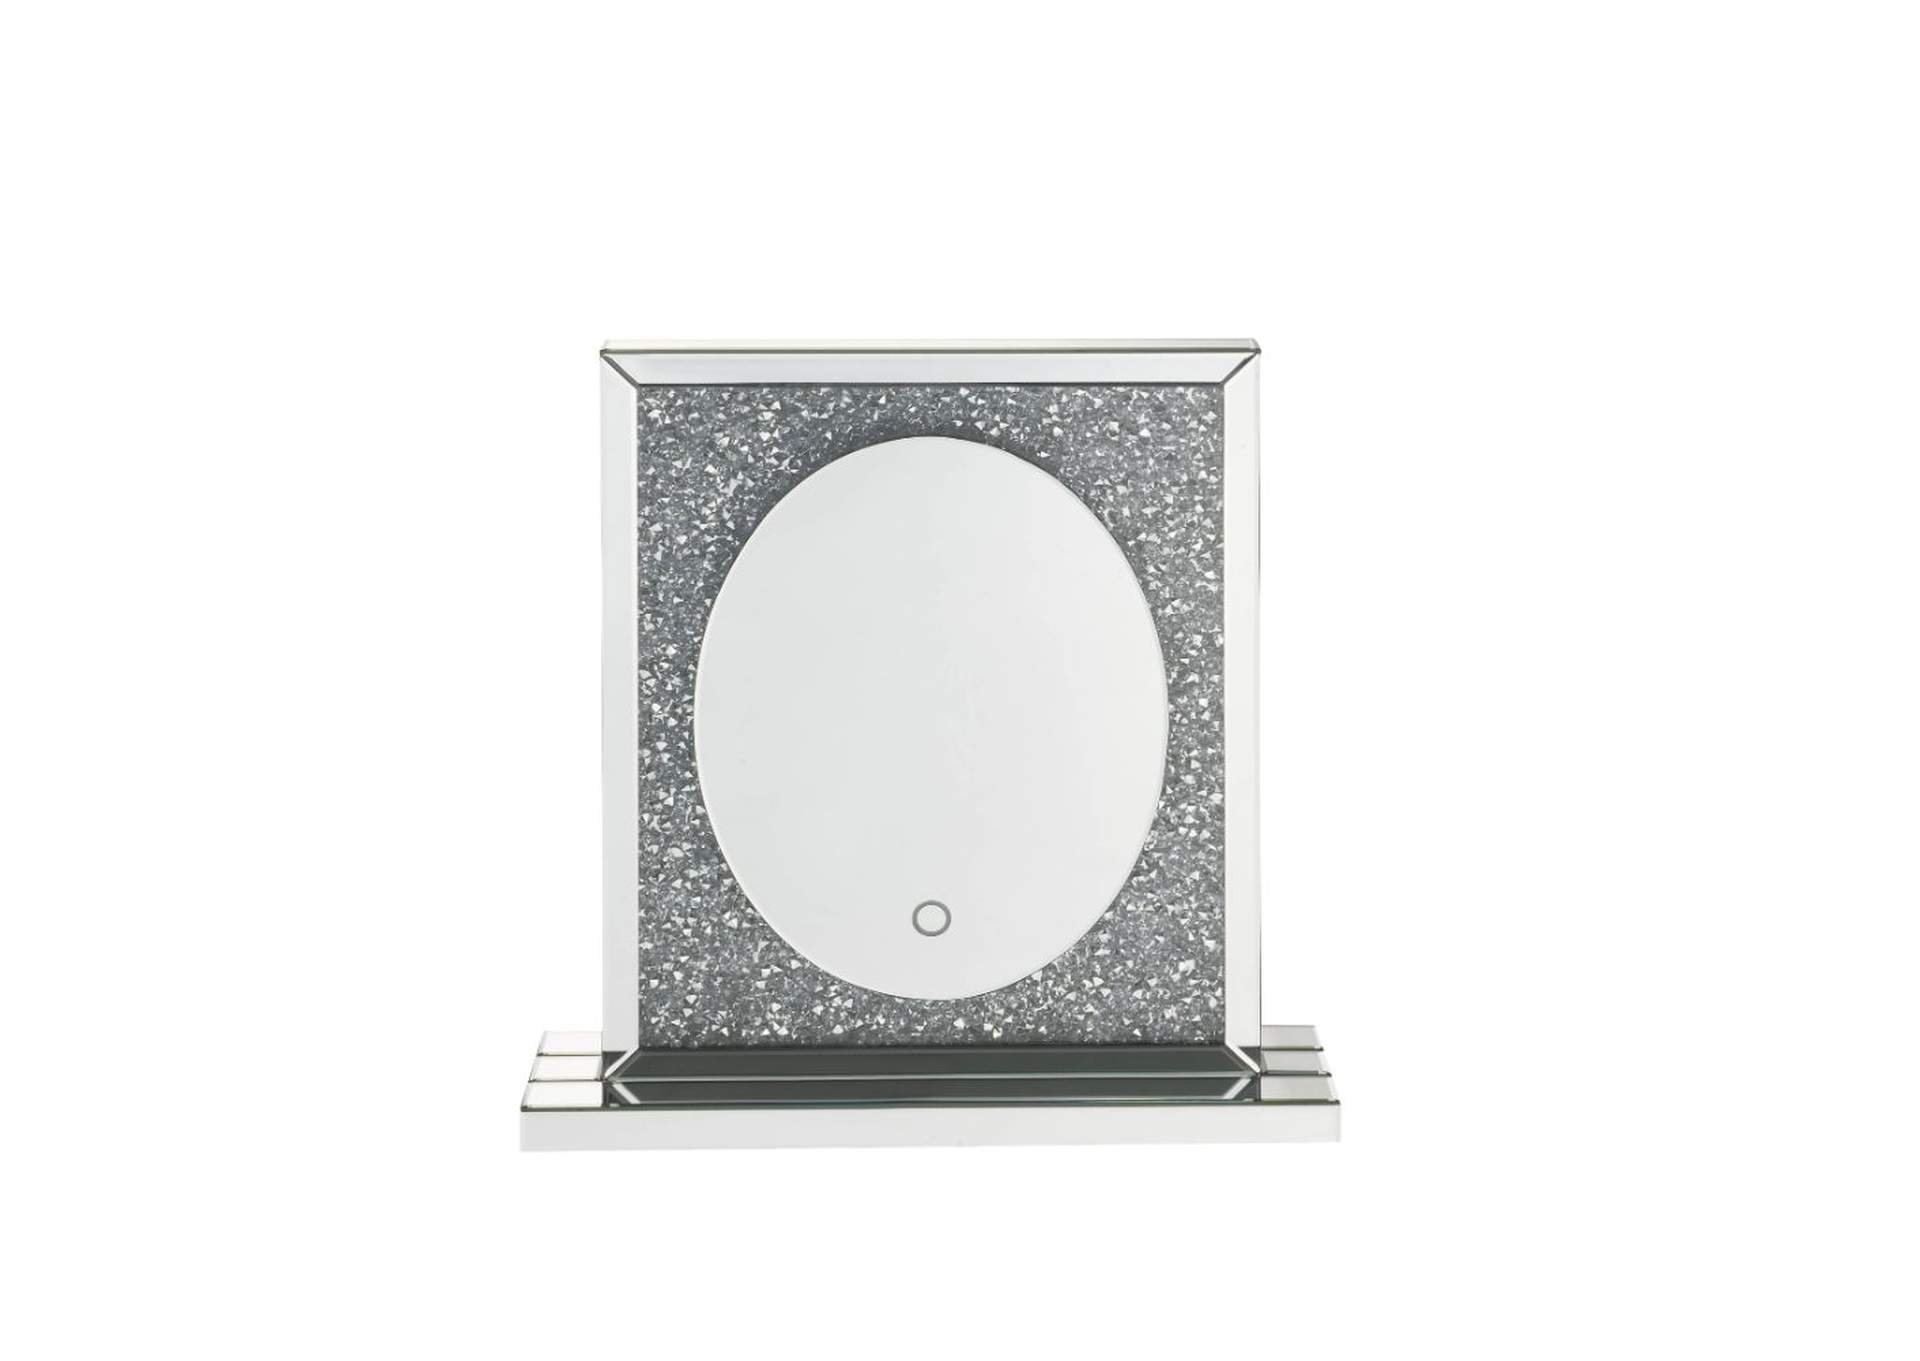 Noralie Mirrored Accent Decor (LED),Acme